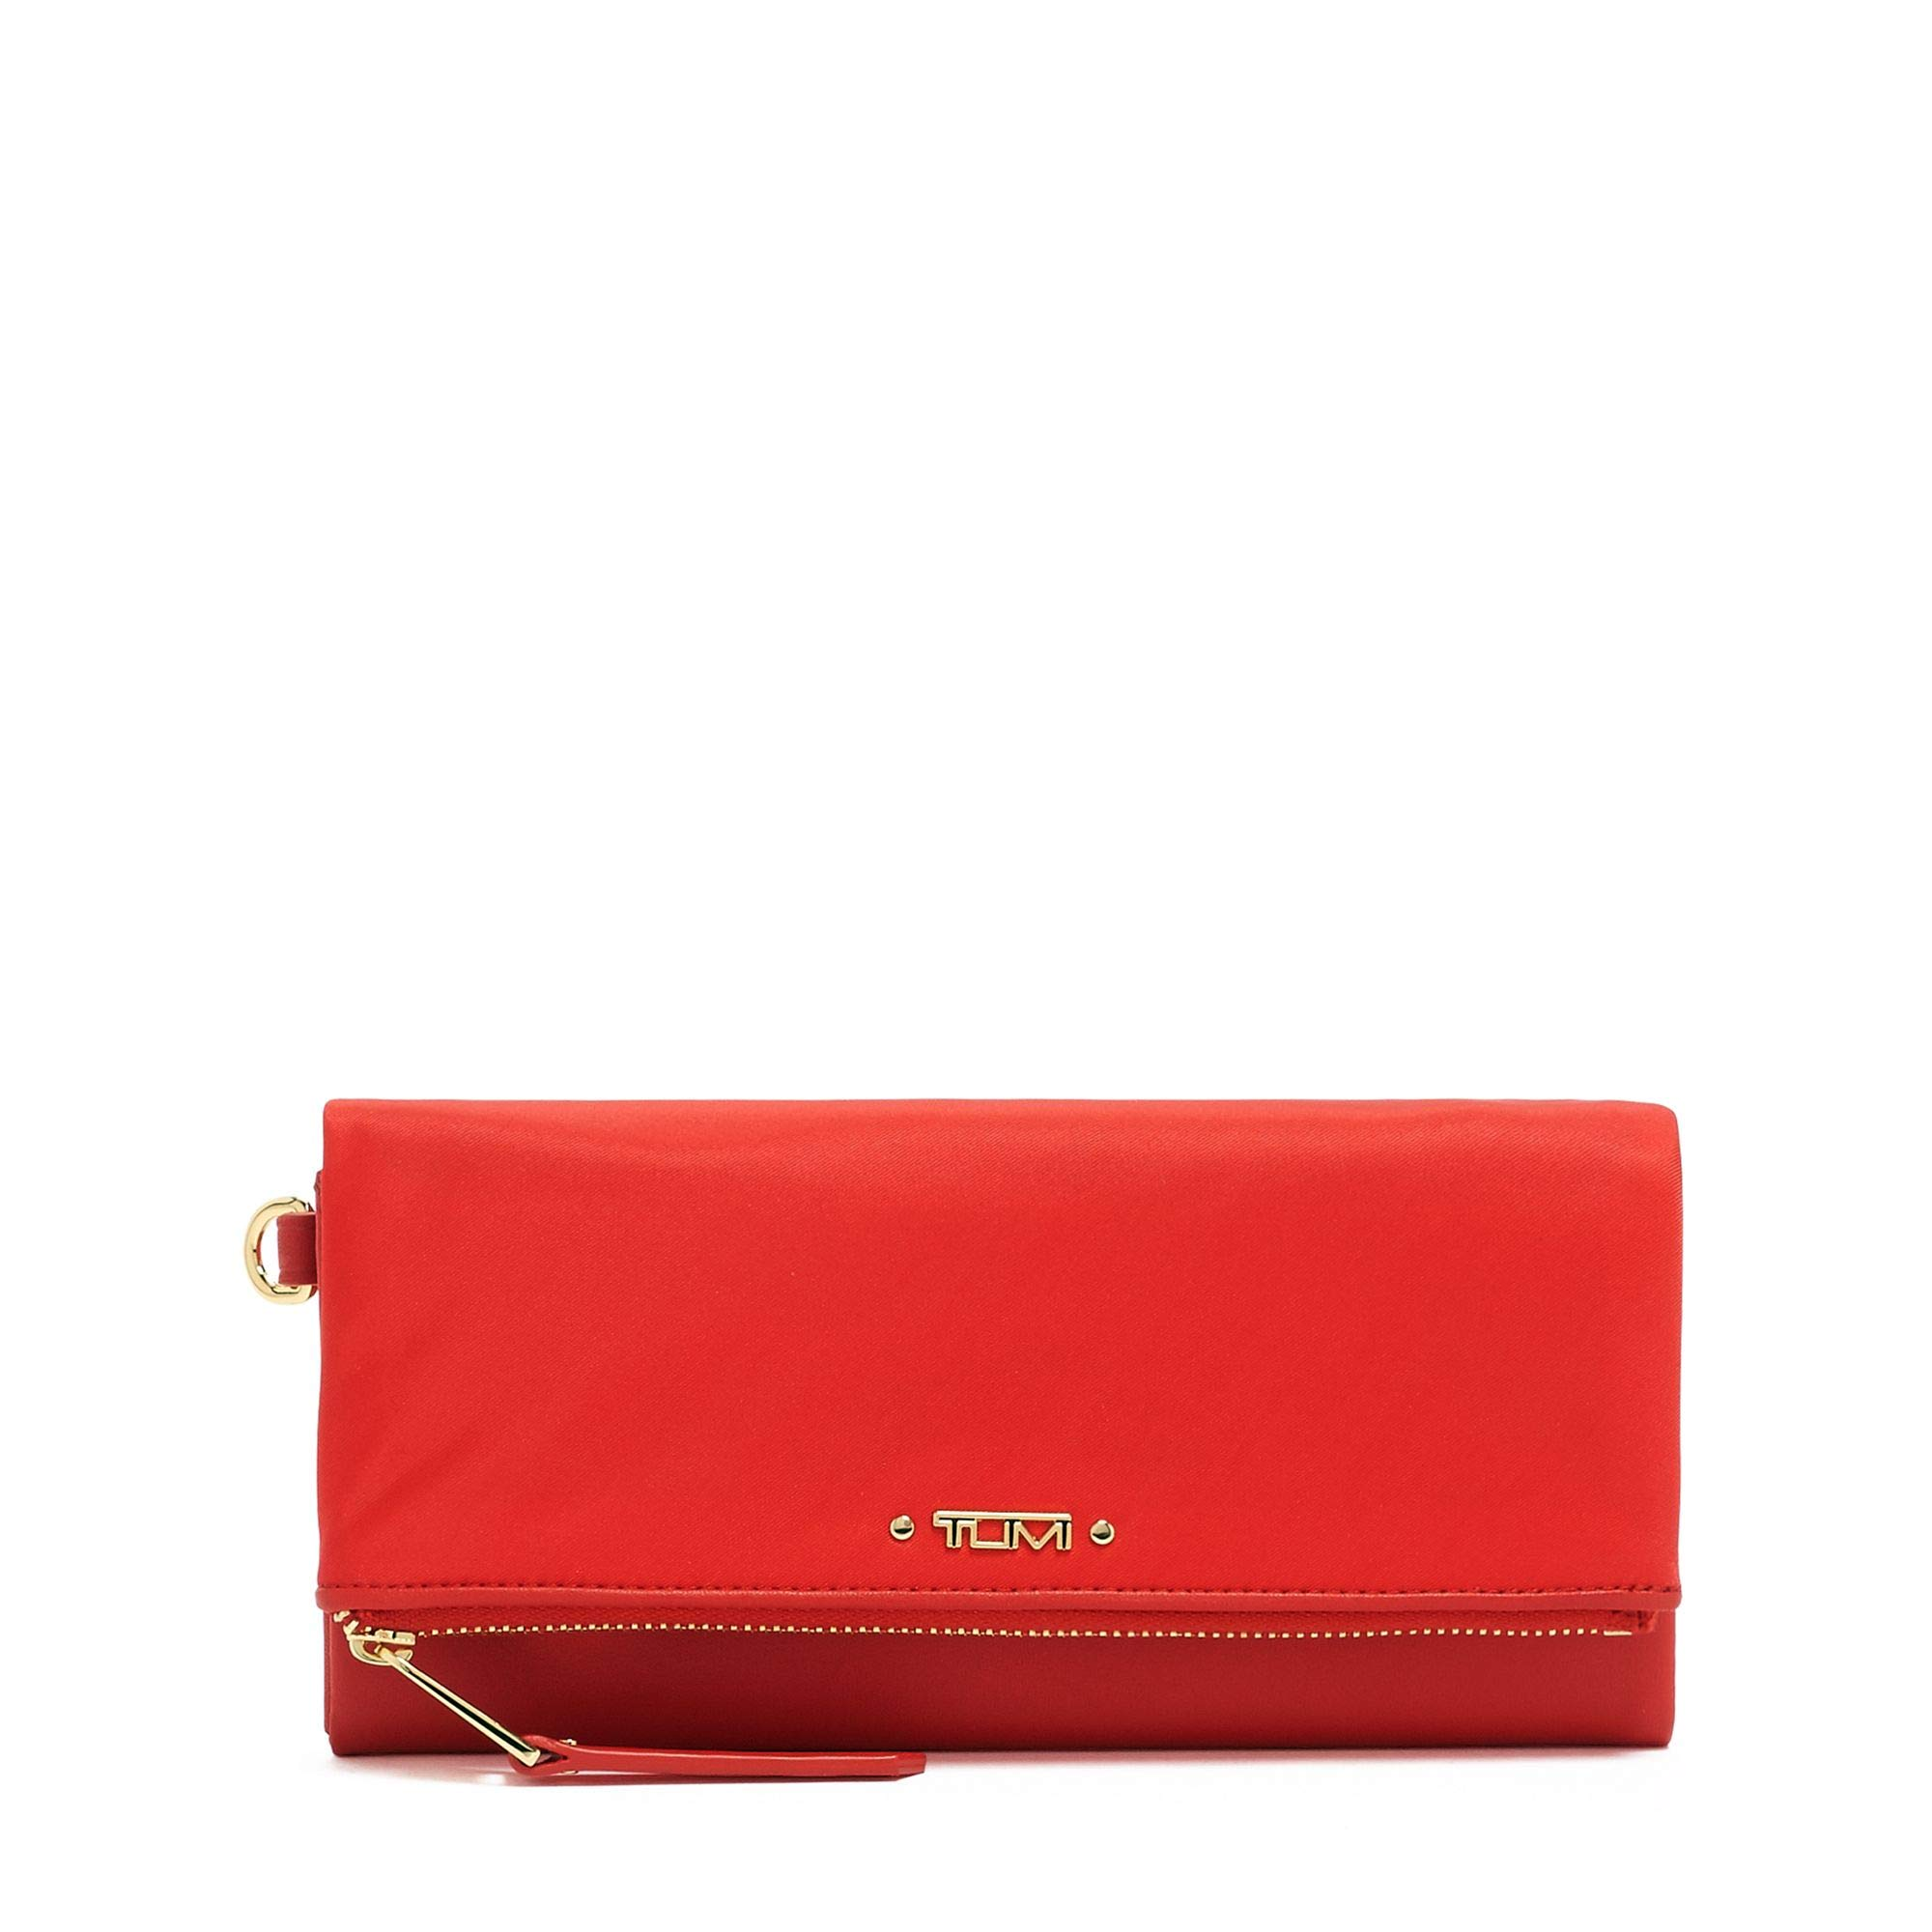 TUMI - Voyageur Flap Continental Wallet - Card Holder for Women - Sunset